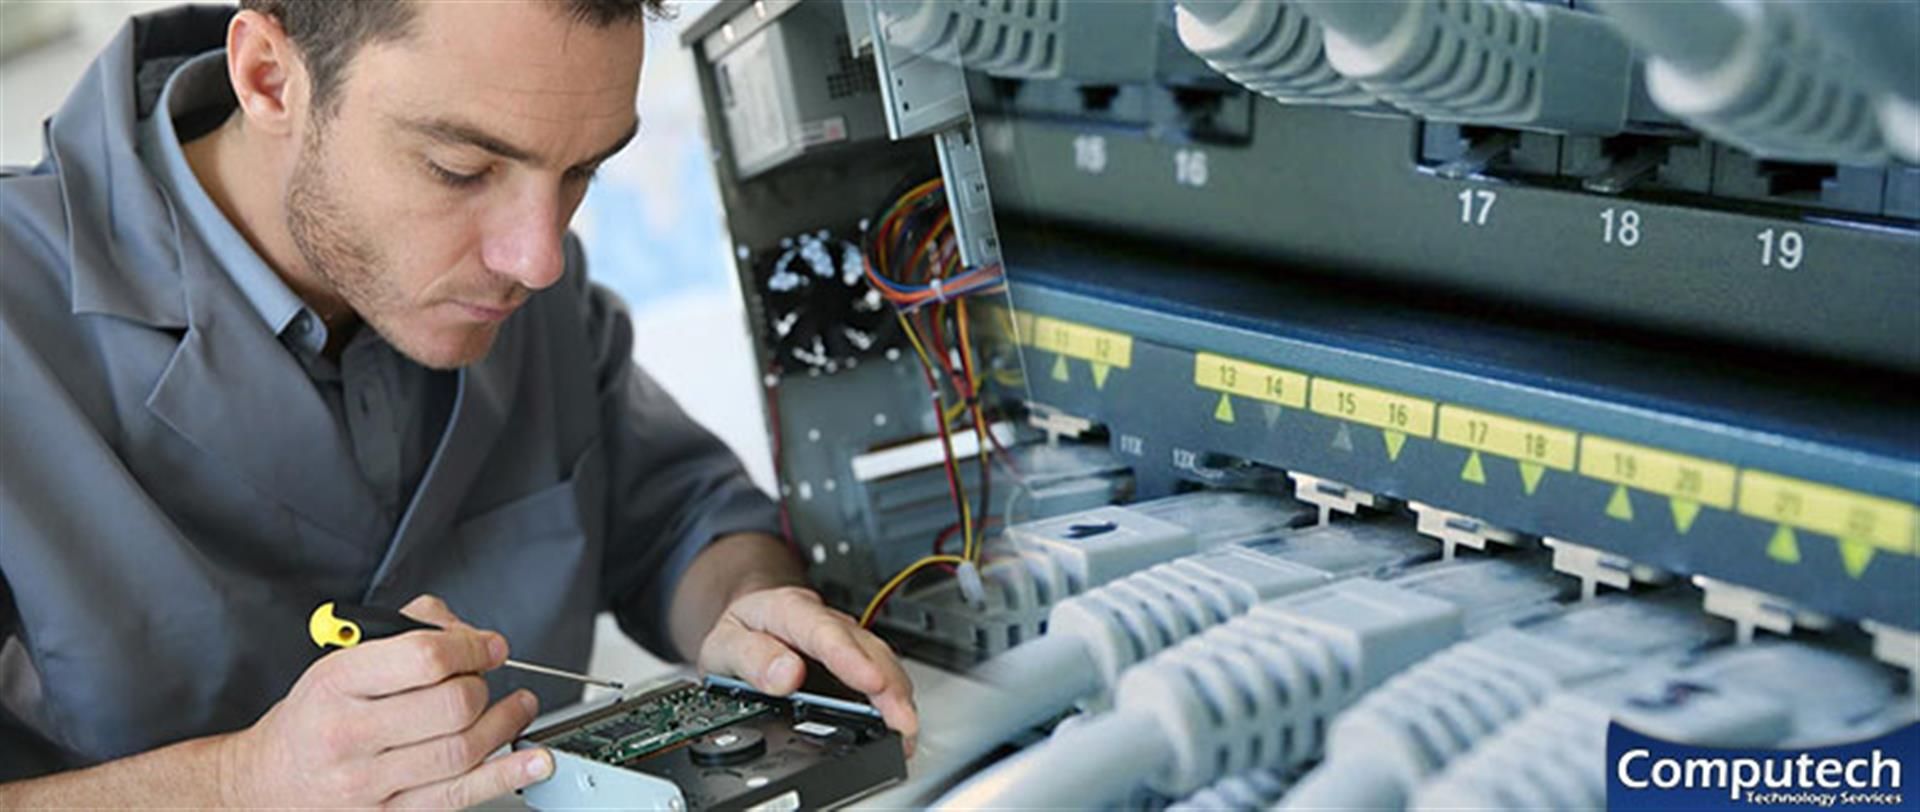 Leesburg Virginia On Site PC & Printer Repair, Networking, Voice & Data Cabling Services